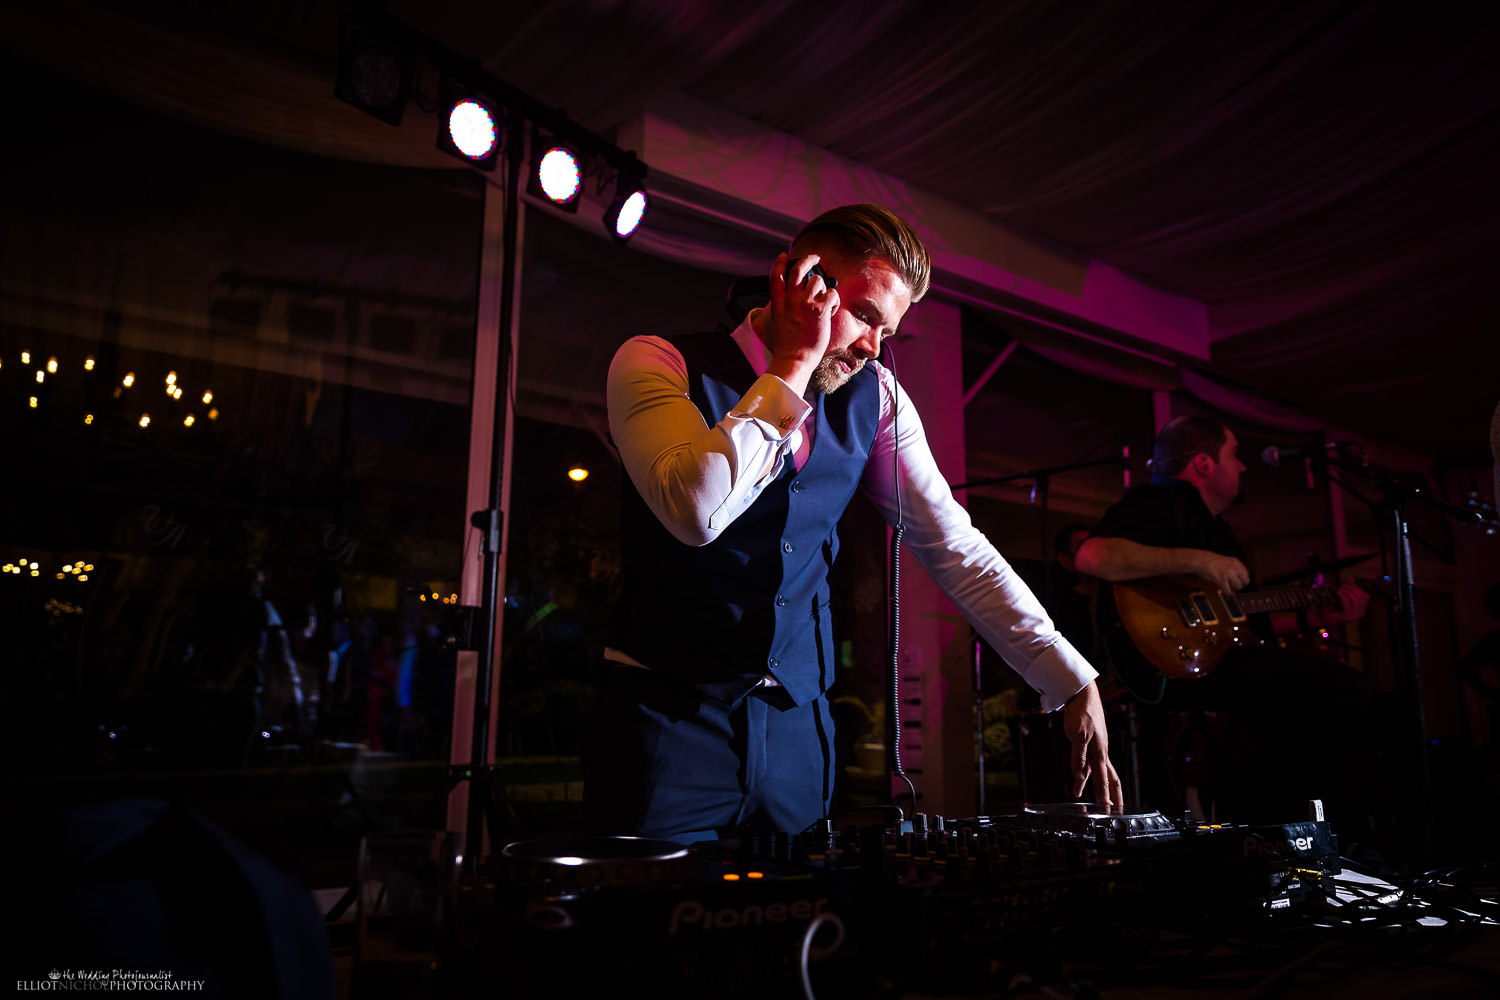 Wedding guest turns DJ during the wedding reception. Photo by Newcastle Upon Tyne based wedding photographer Elliot Nichol.